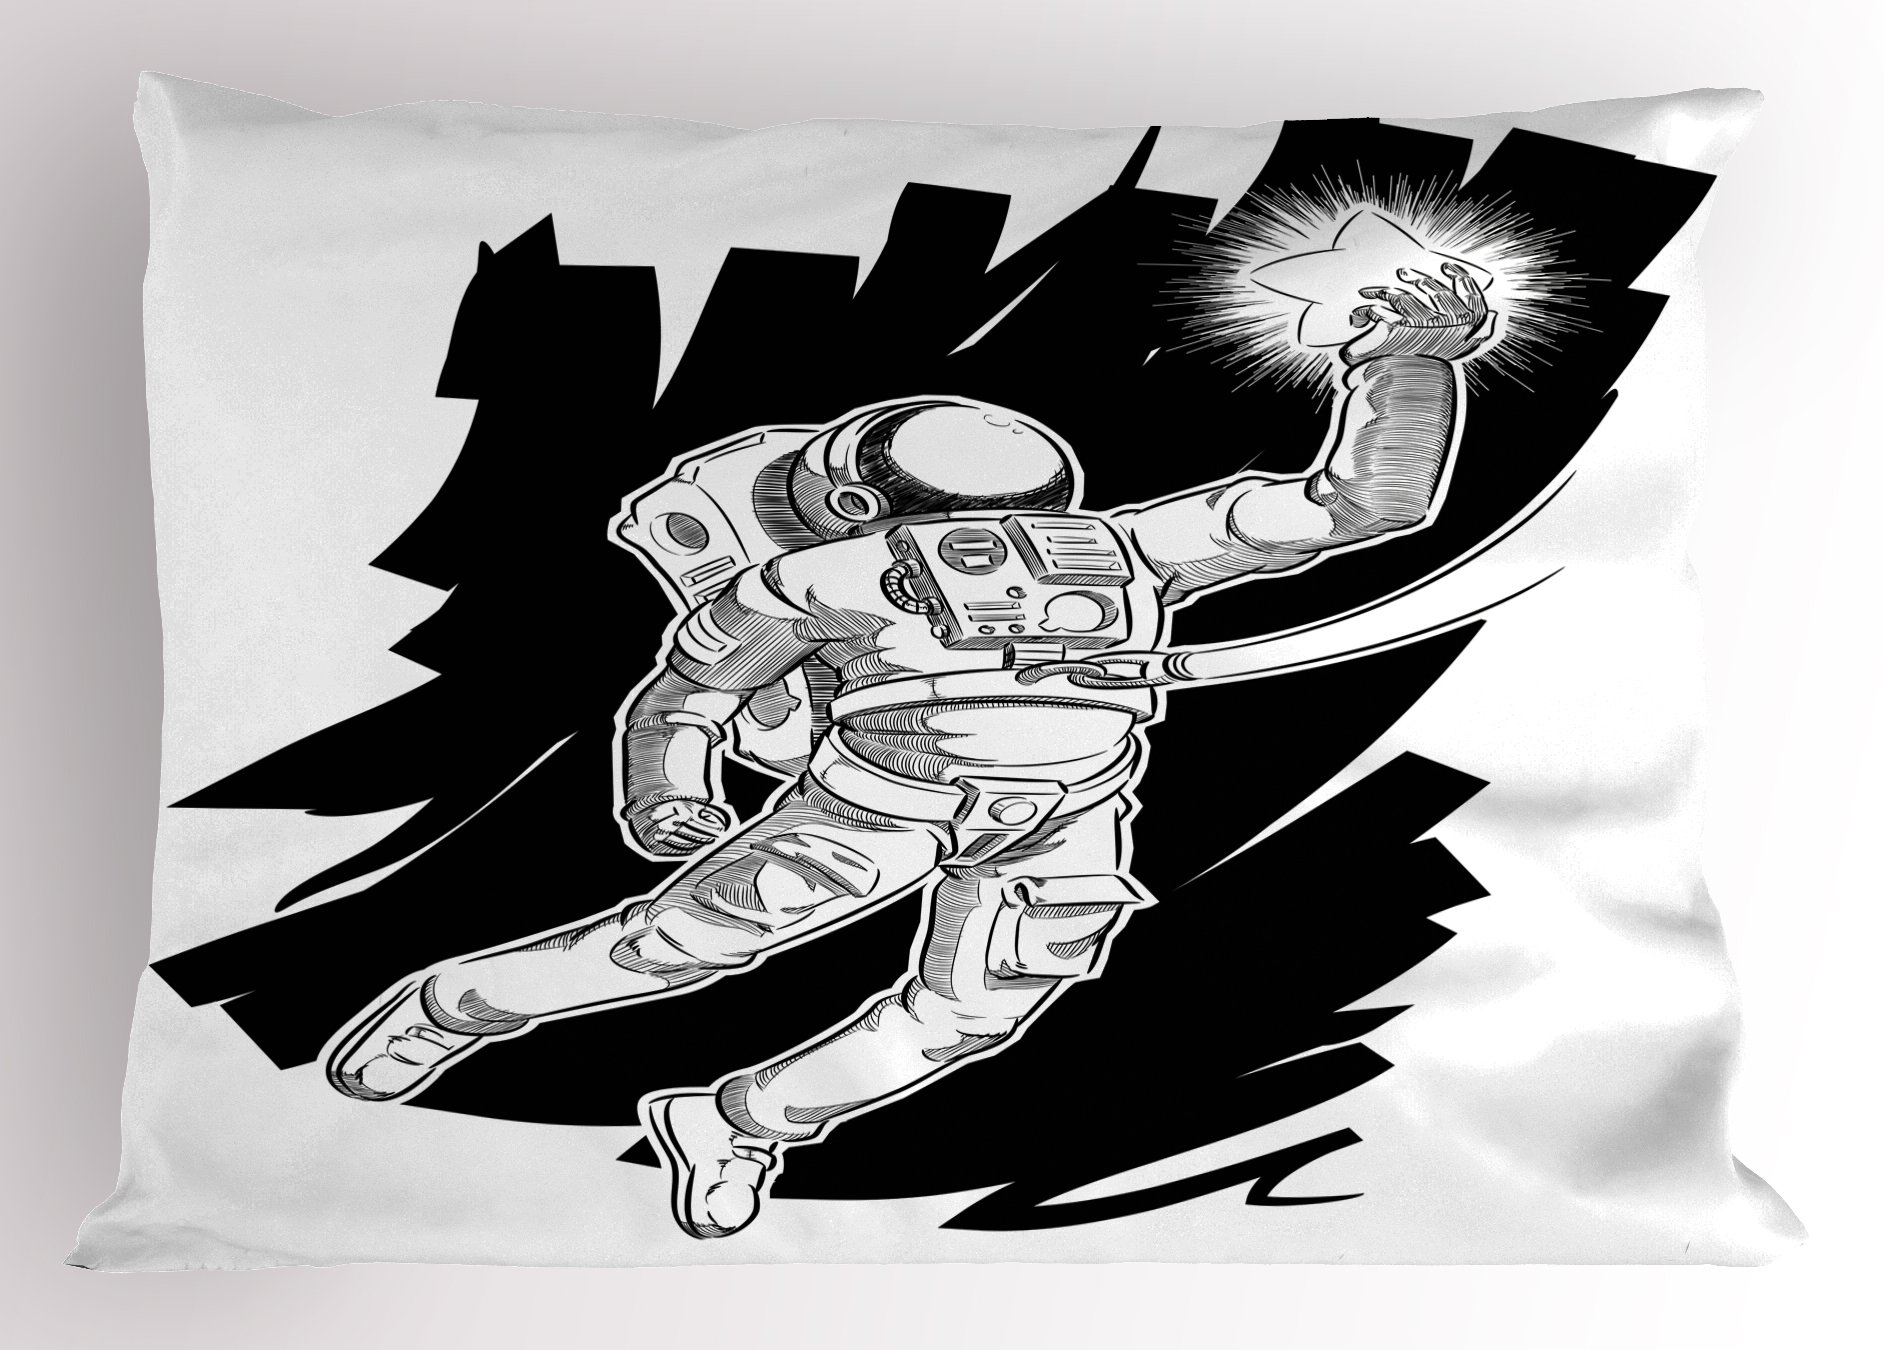 Ambesonne Astronaut Pillow Sham, Sketch of Spaceman Grabbing a Star Achivement Discovery Zero Gravity Technology, Decorative Standard Queen Size Printed Pillowcase, 30 X 20 inches, Black White